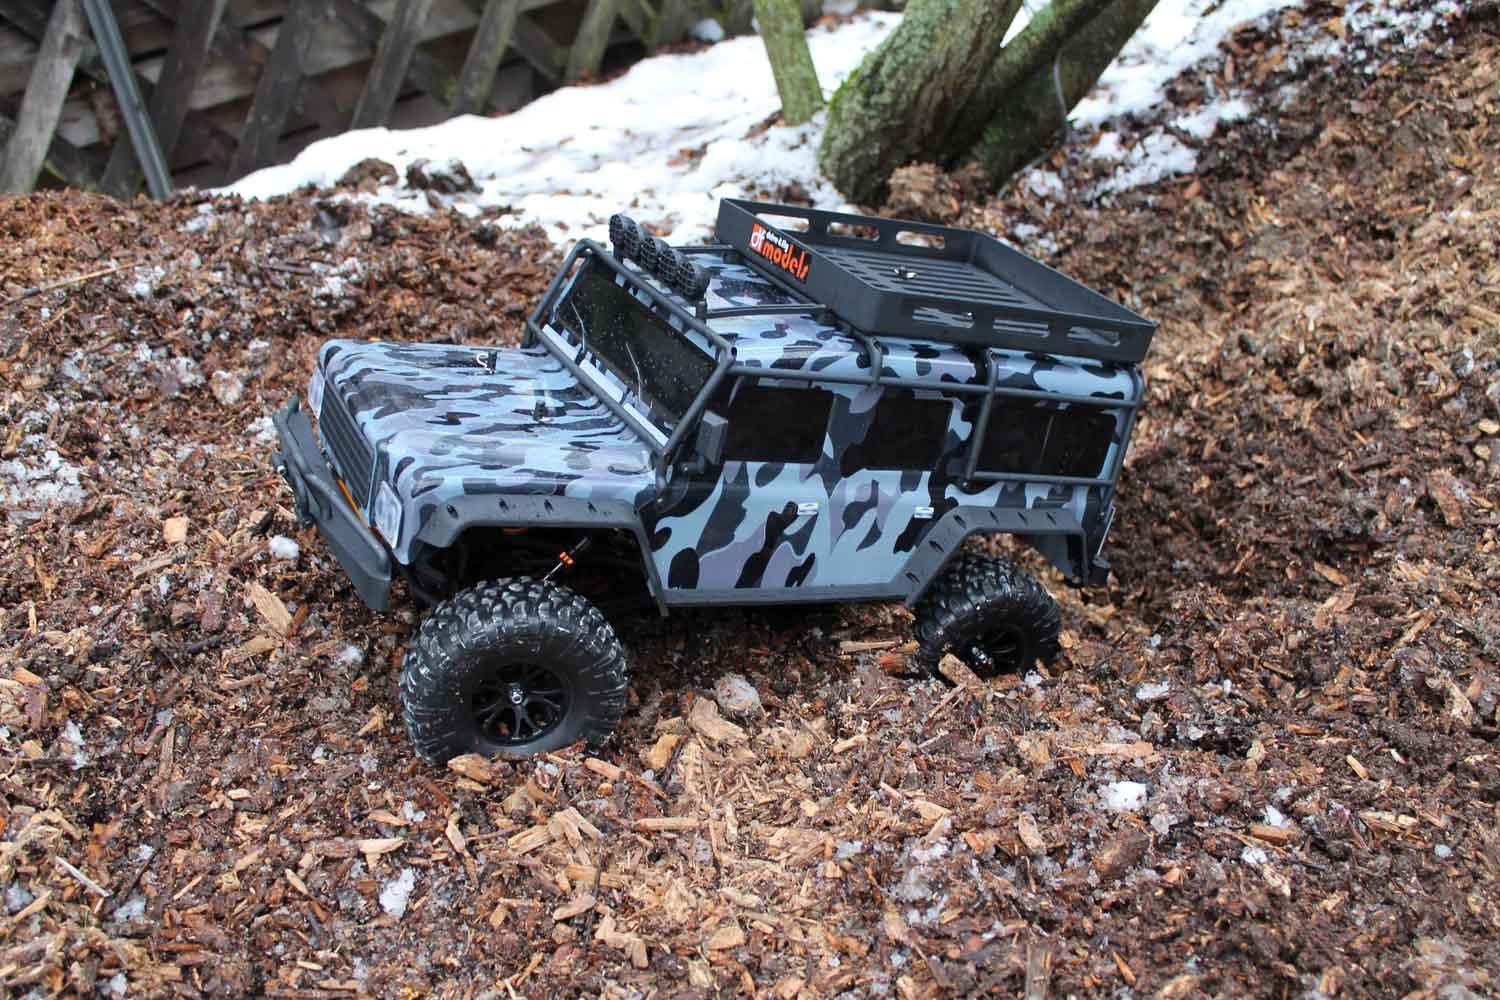 DF-4J CRAWLER CAMO 2 PRESTAVI LED-2021 EDITION-3117